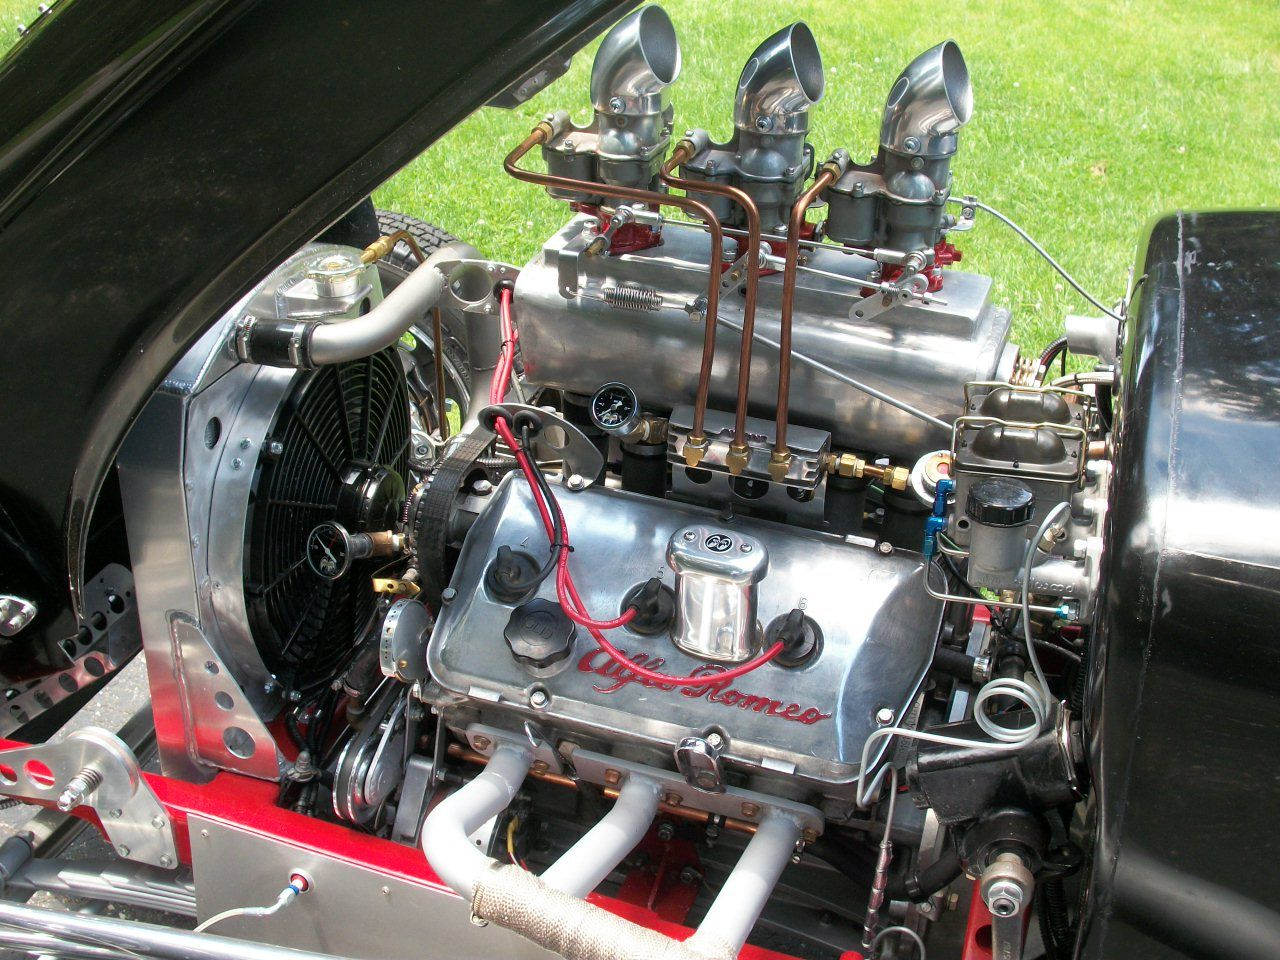 Zipper Lakes Modified Roadster Engine An All Aluminum Alfa Romeo S O H C V6 Hemi With 3 Holley 94 On A Fabricated Intake Manifold